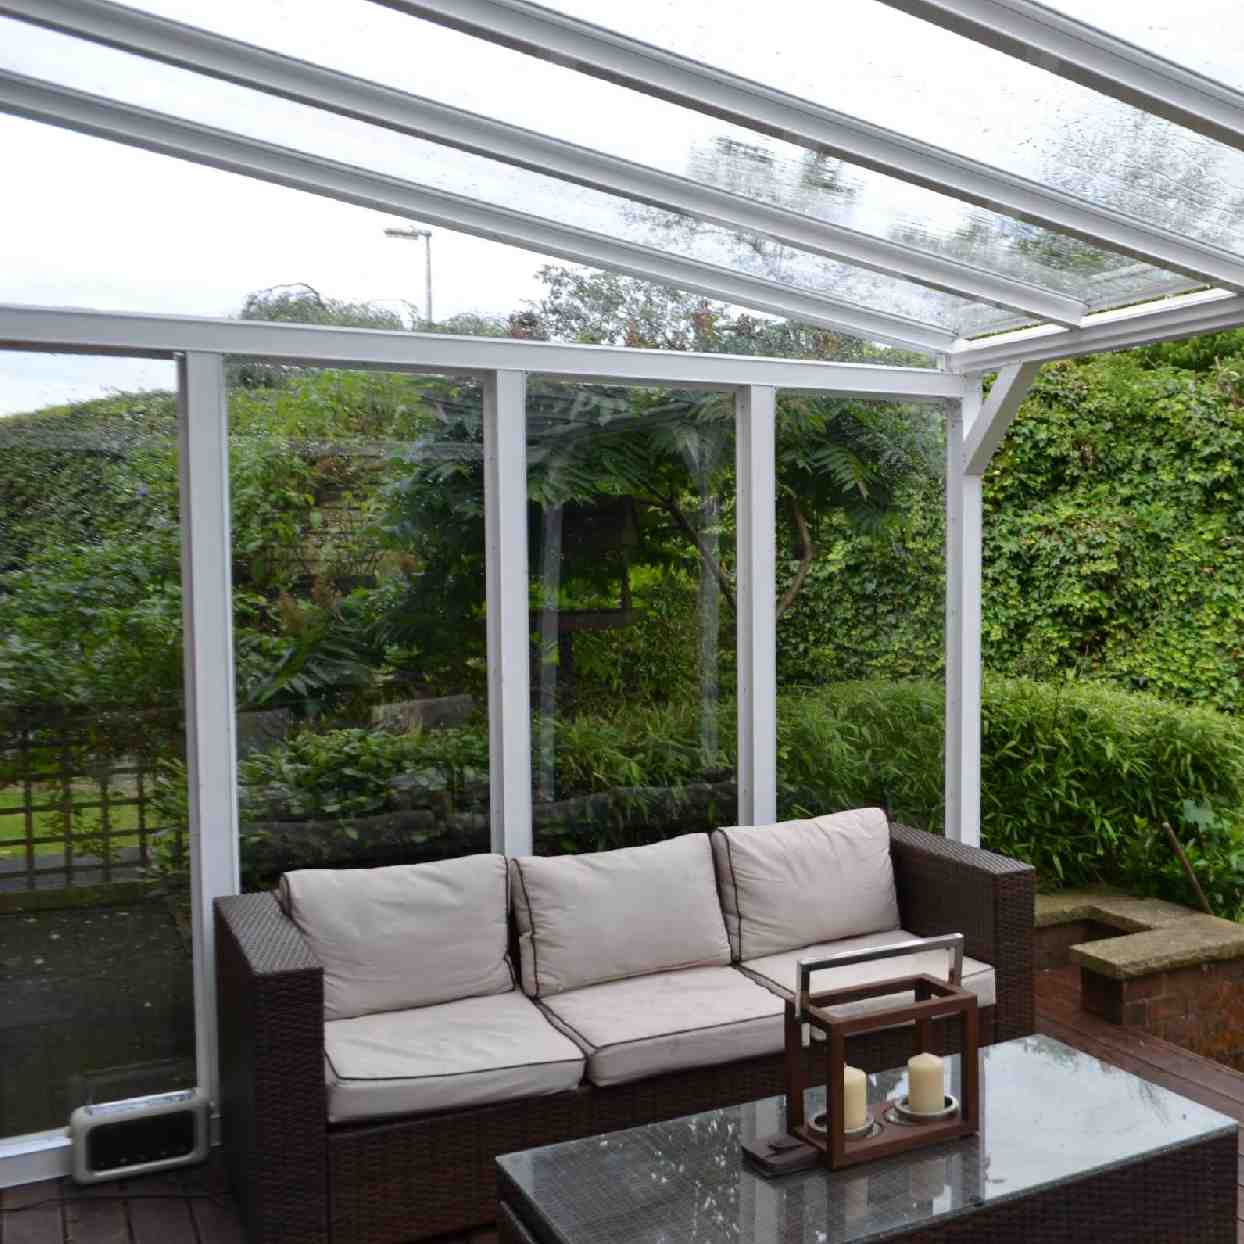 Buy Omega Verandah with 6mm Glass Clear Plate Polycarbonate Glazing - 3.5m (W) x 2.5m (P), (3) Supporting Posts online today